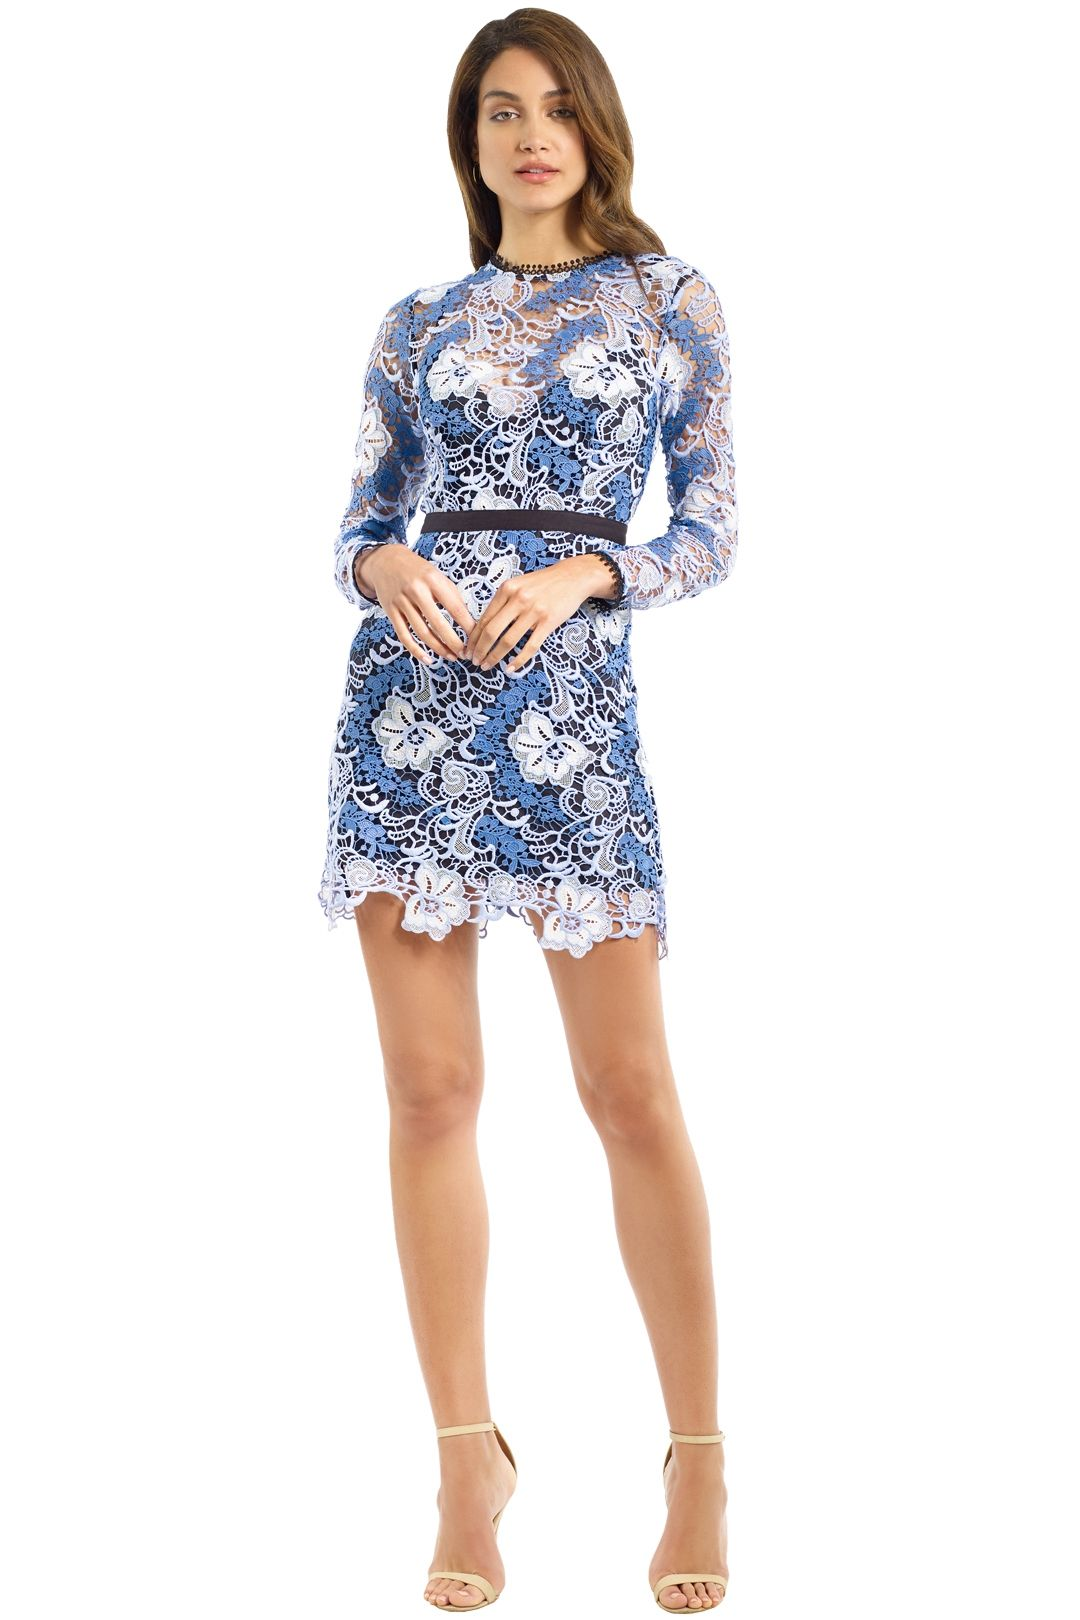 Talulah - The Passion LS Mini Dress - Blue - Front